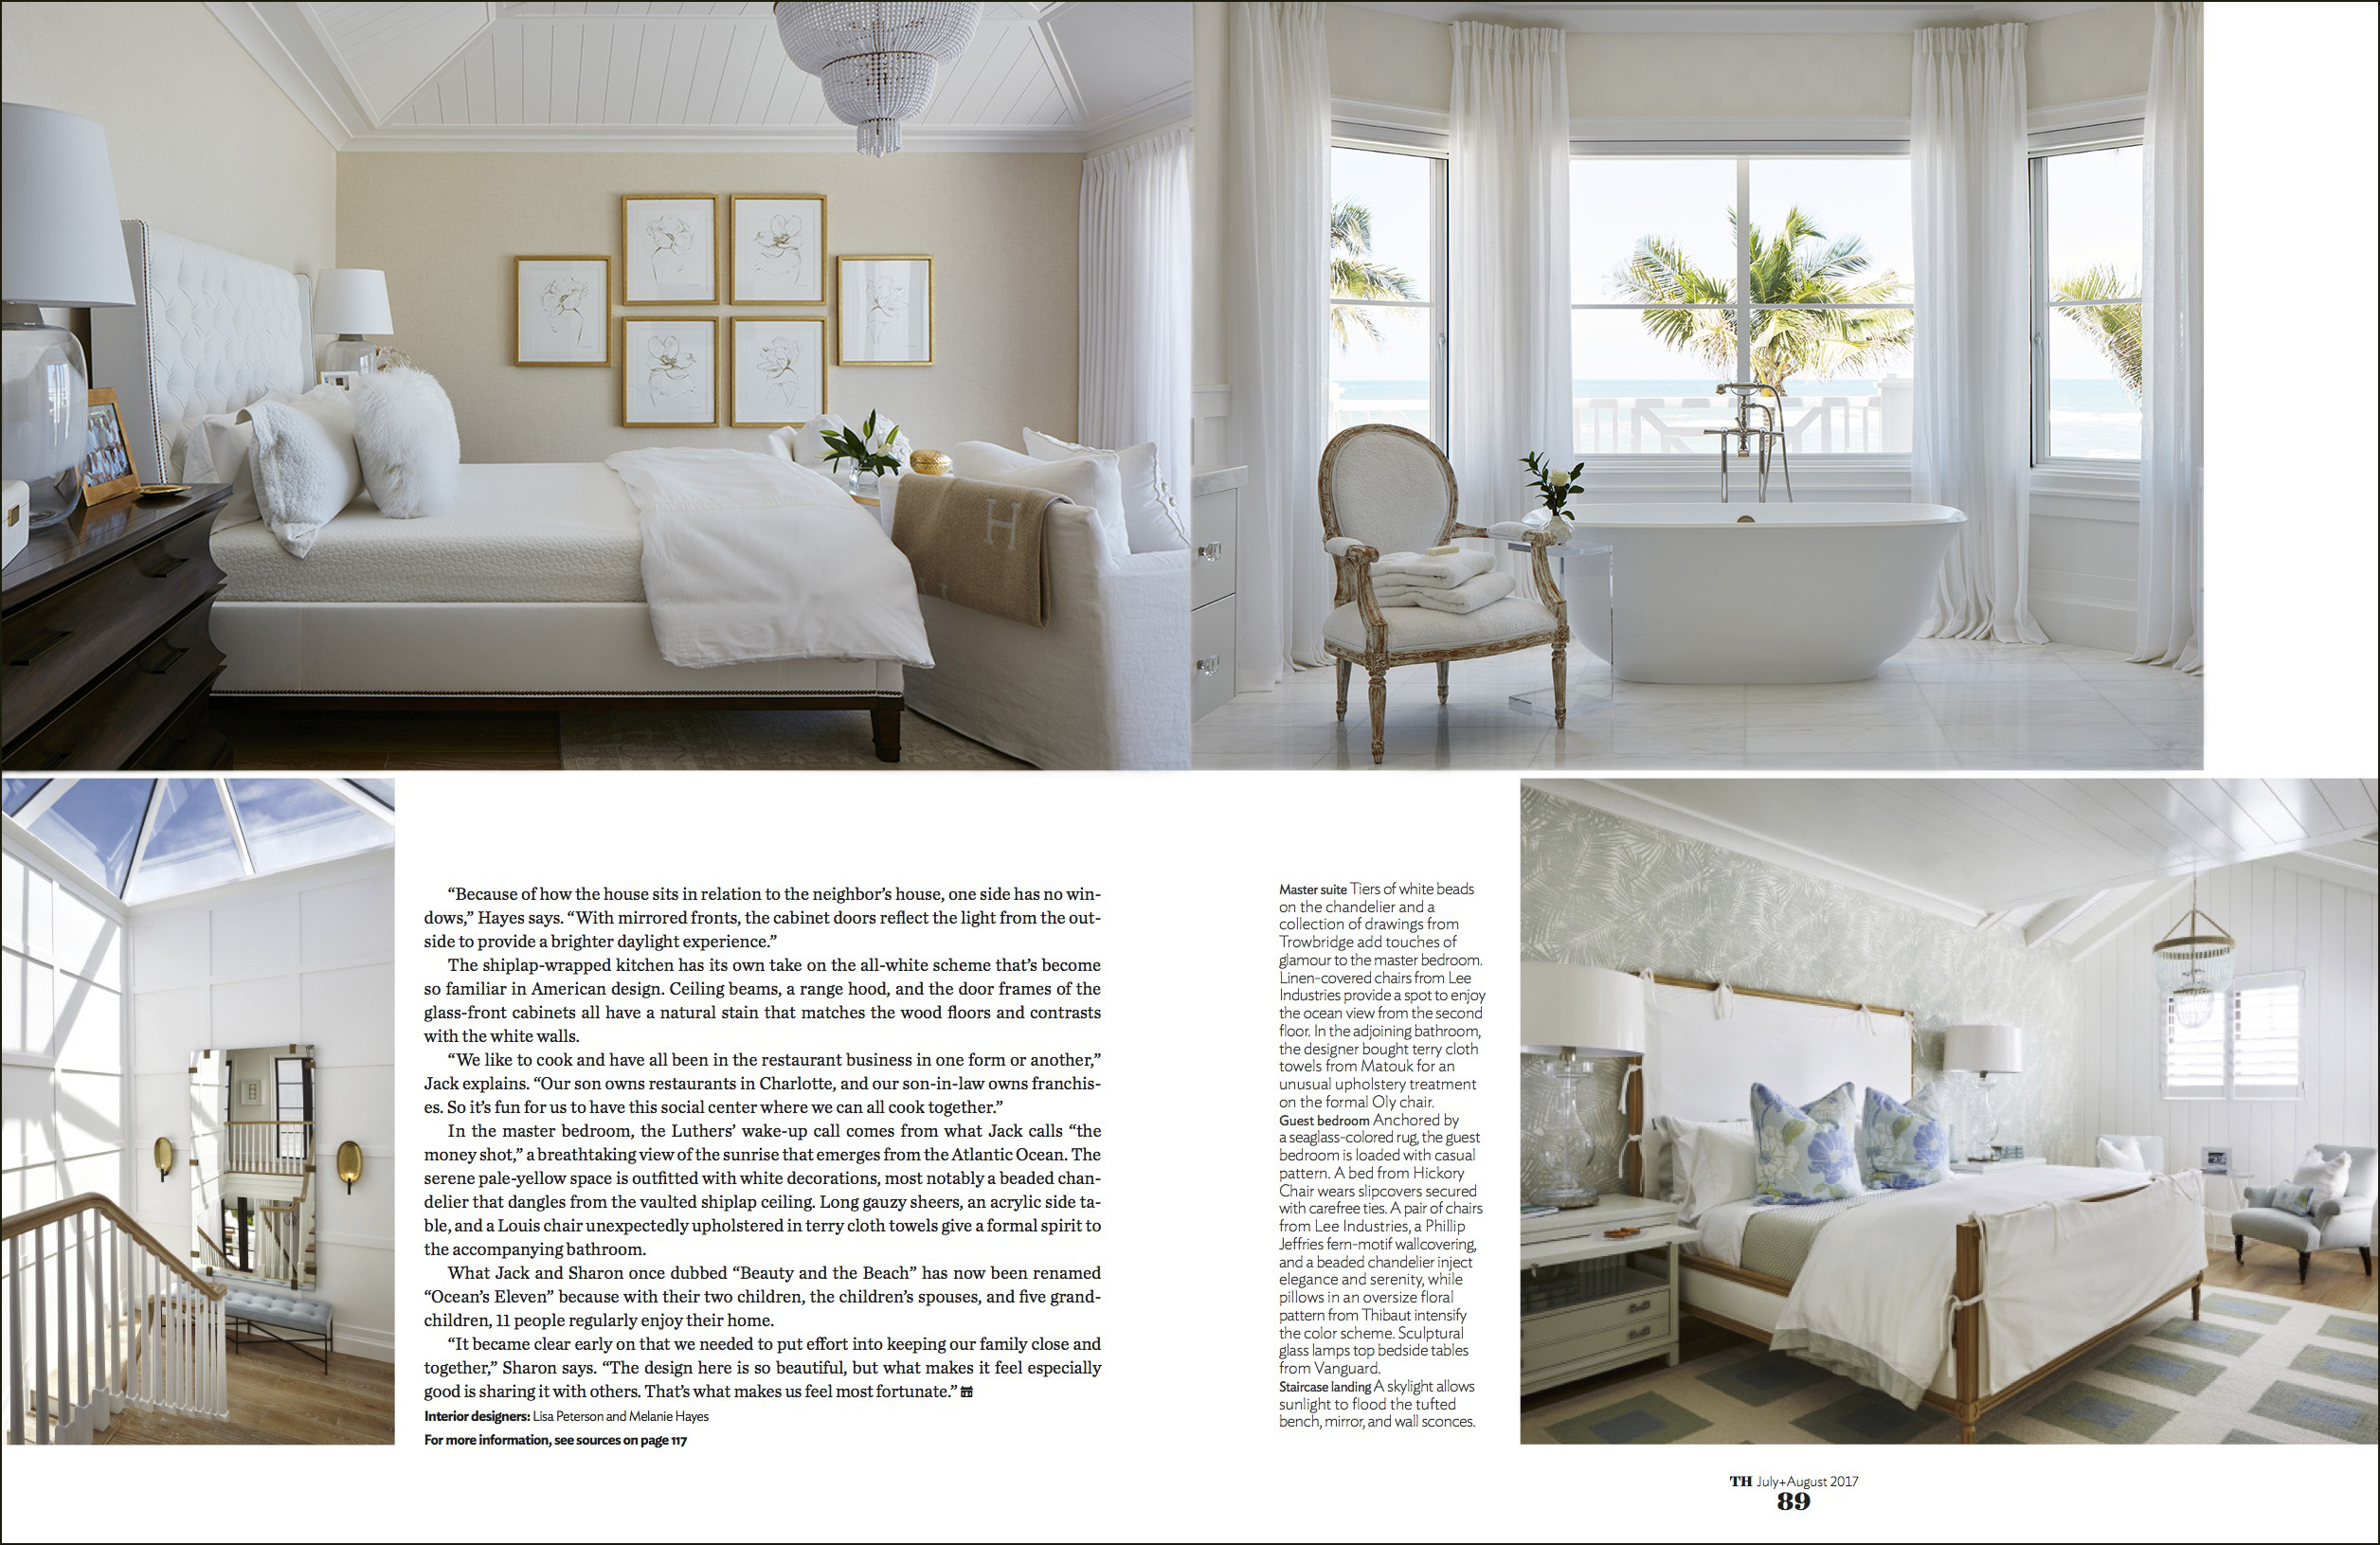 Many Thanks To The Staff At Traditional Home For Making This Possible July August Issue Of Interior Design Magazine